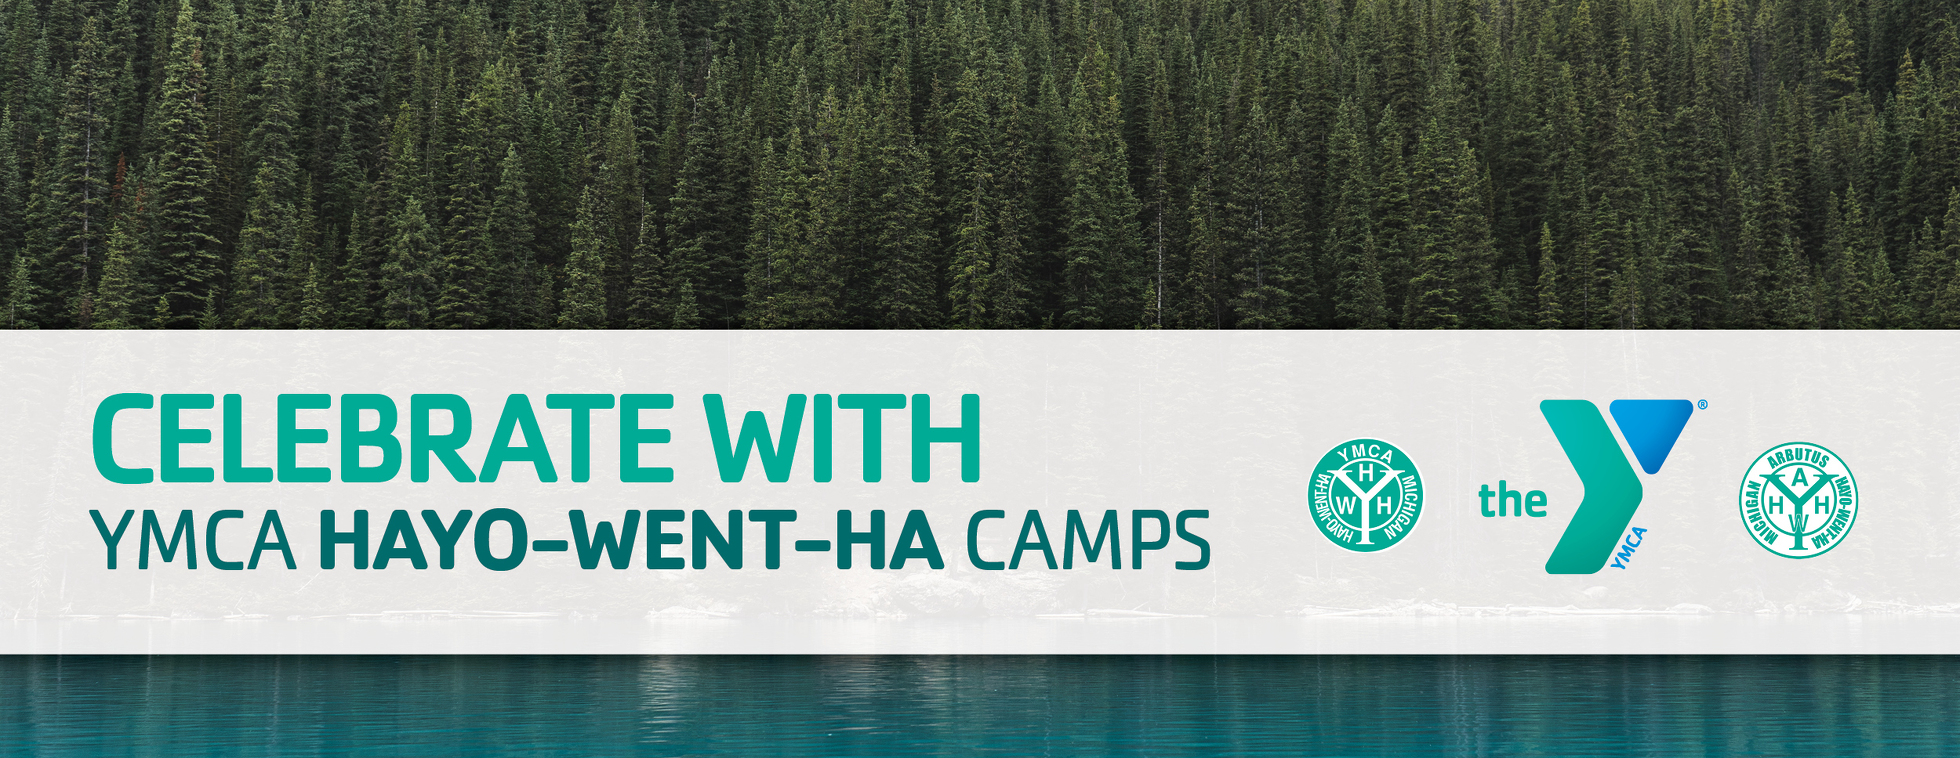 Celebrate with YMCA Hayo-Went-Ha Camps